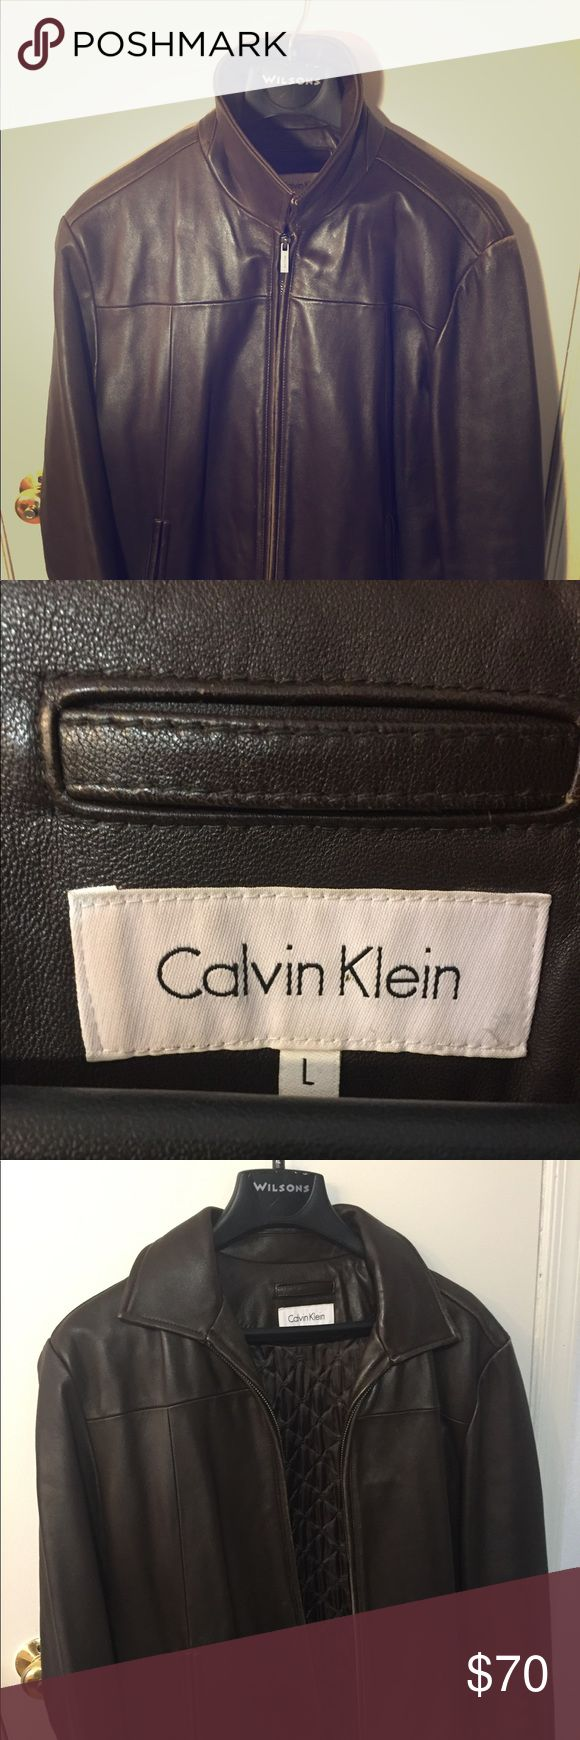 Brown Calvin Klein Leather Jacket (Open to offers) All leather, brown, soft, Calvin Klein Jacket. Minor scratches on left and right shoulder (barely noticeable). Open to offers and bundles. Calvin Klein Jackets & Coats Bomber & Varsity